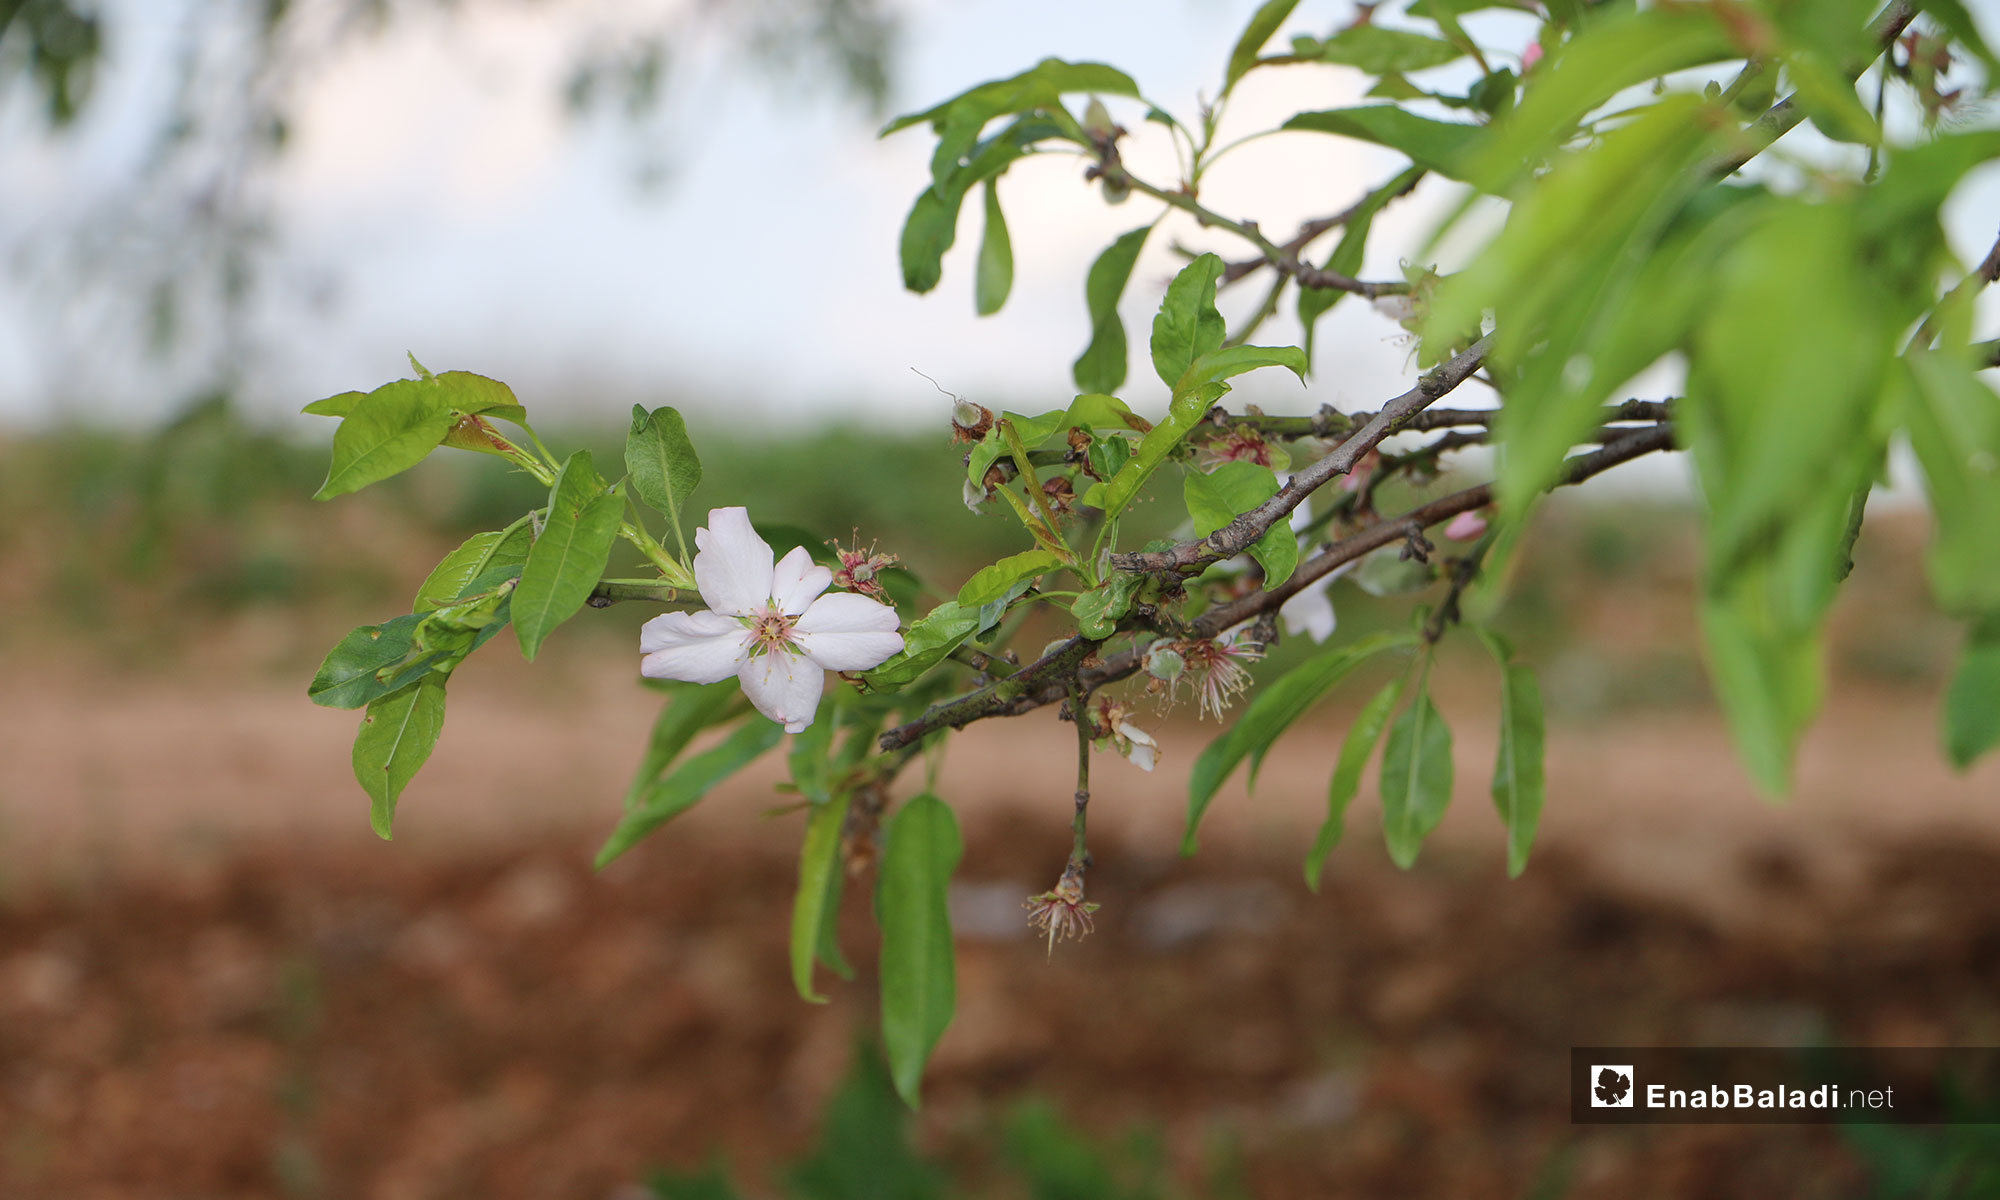 Flowers of almond trees blossoming in northern rural Aleppo – April 10, 2019 (Enab Baladi)